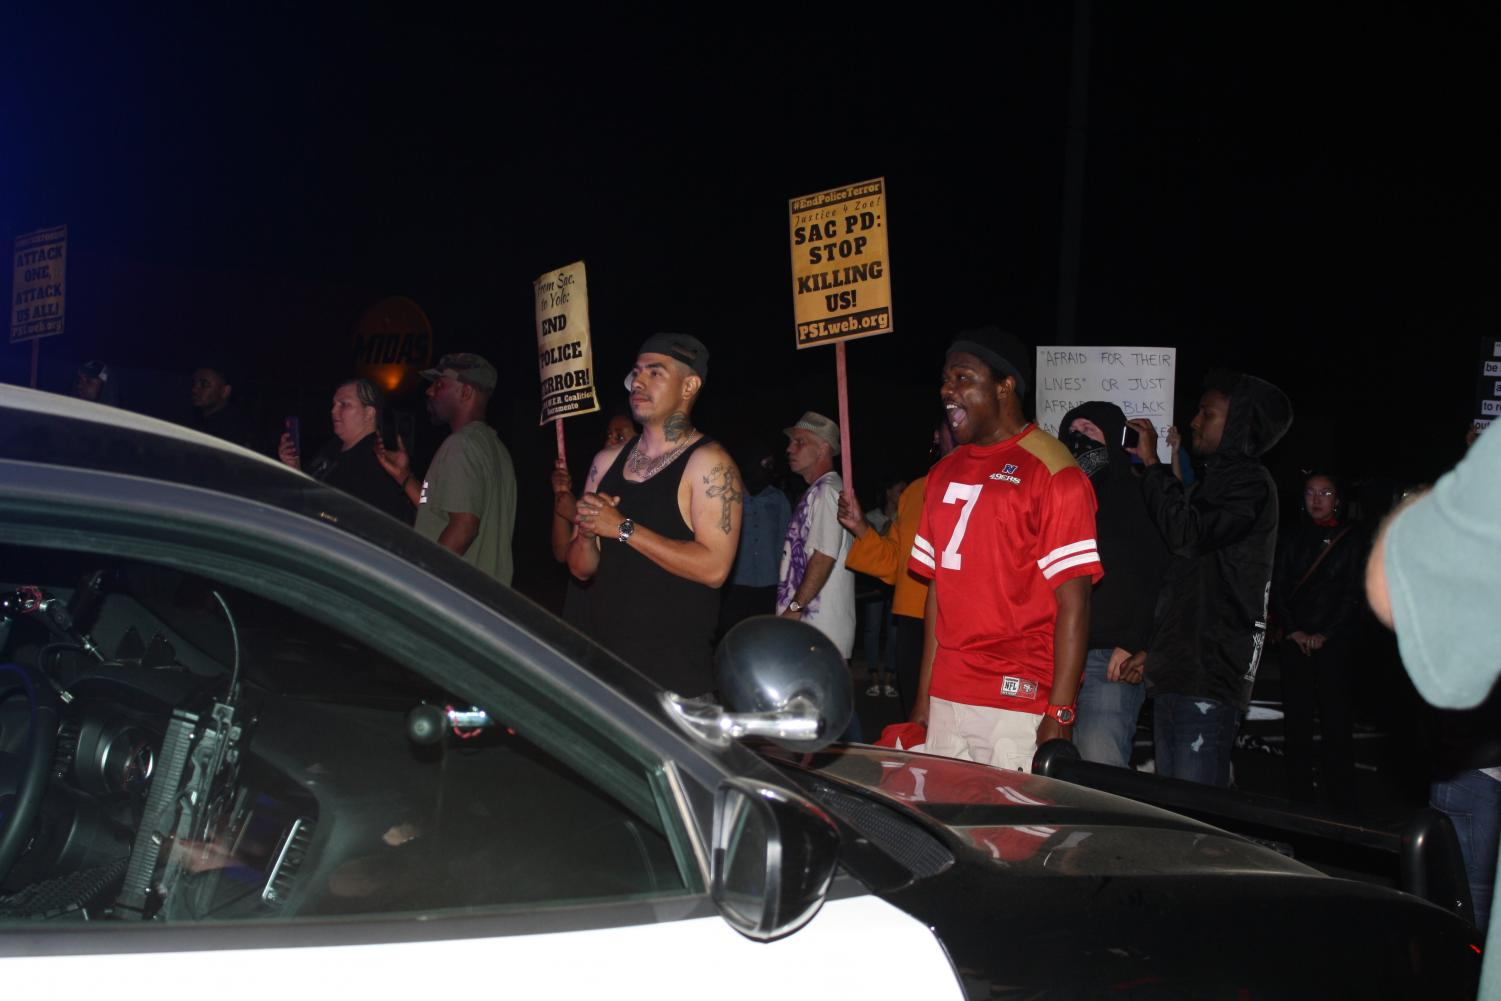 Protesters+moved+in+on+Sacramento+County+Sheriff%27s+Department+vehicles+after+bringing+traffic+to+a+near-complete+stop+on+the+night+of+Saturday%2C+March+31+2018.+The+department+said+the+protesters+were+%22yelling+while+pounding+on+the+vehicles%27+exterior.%22